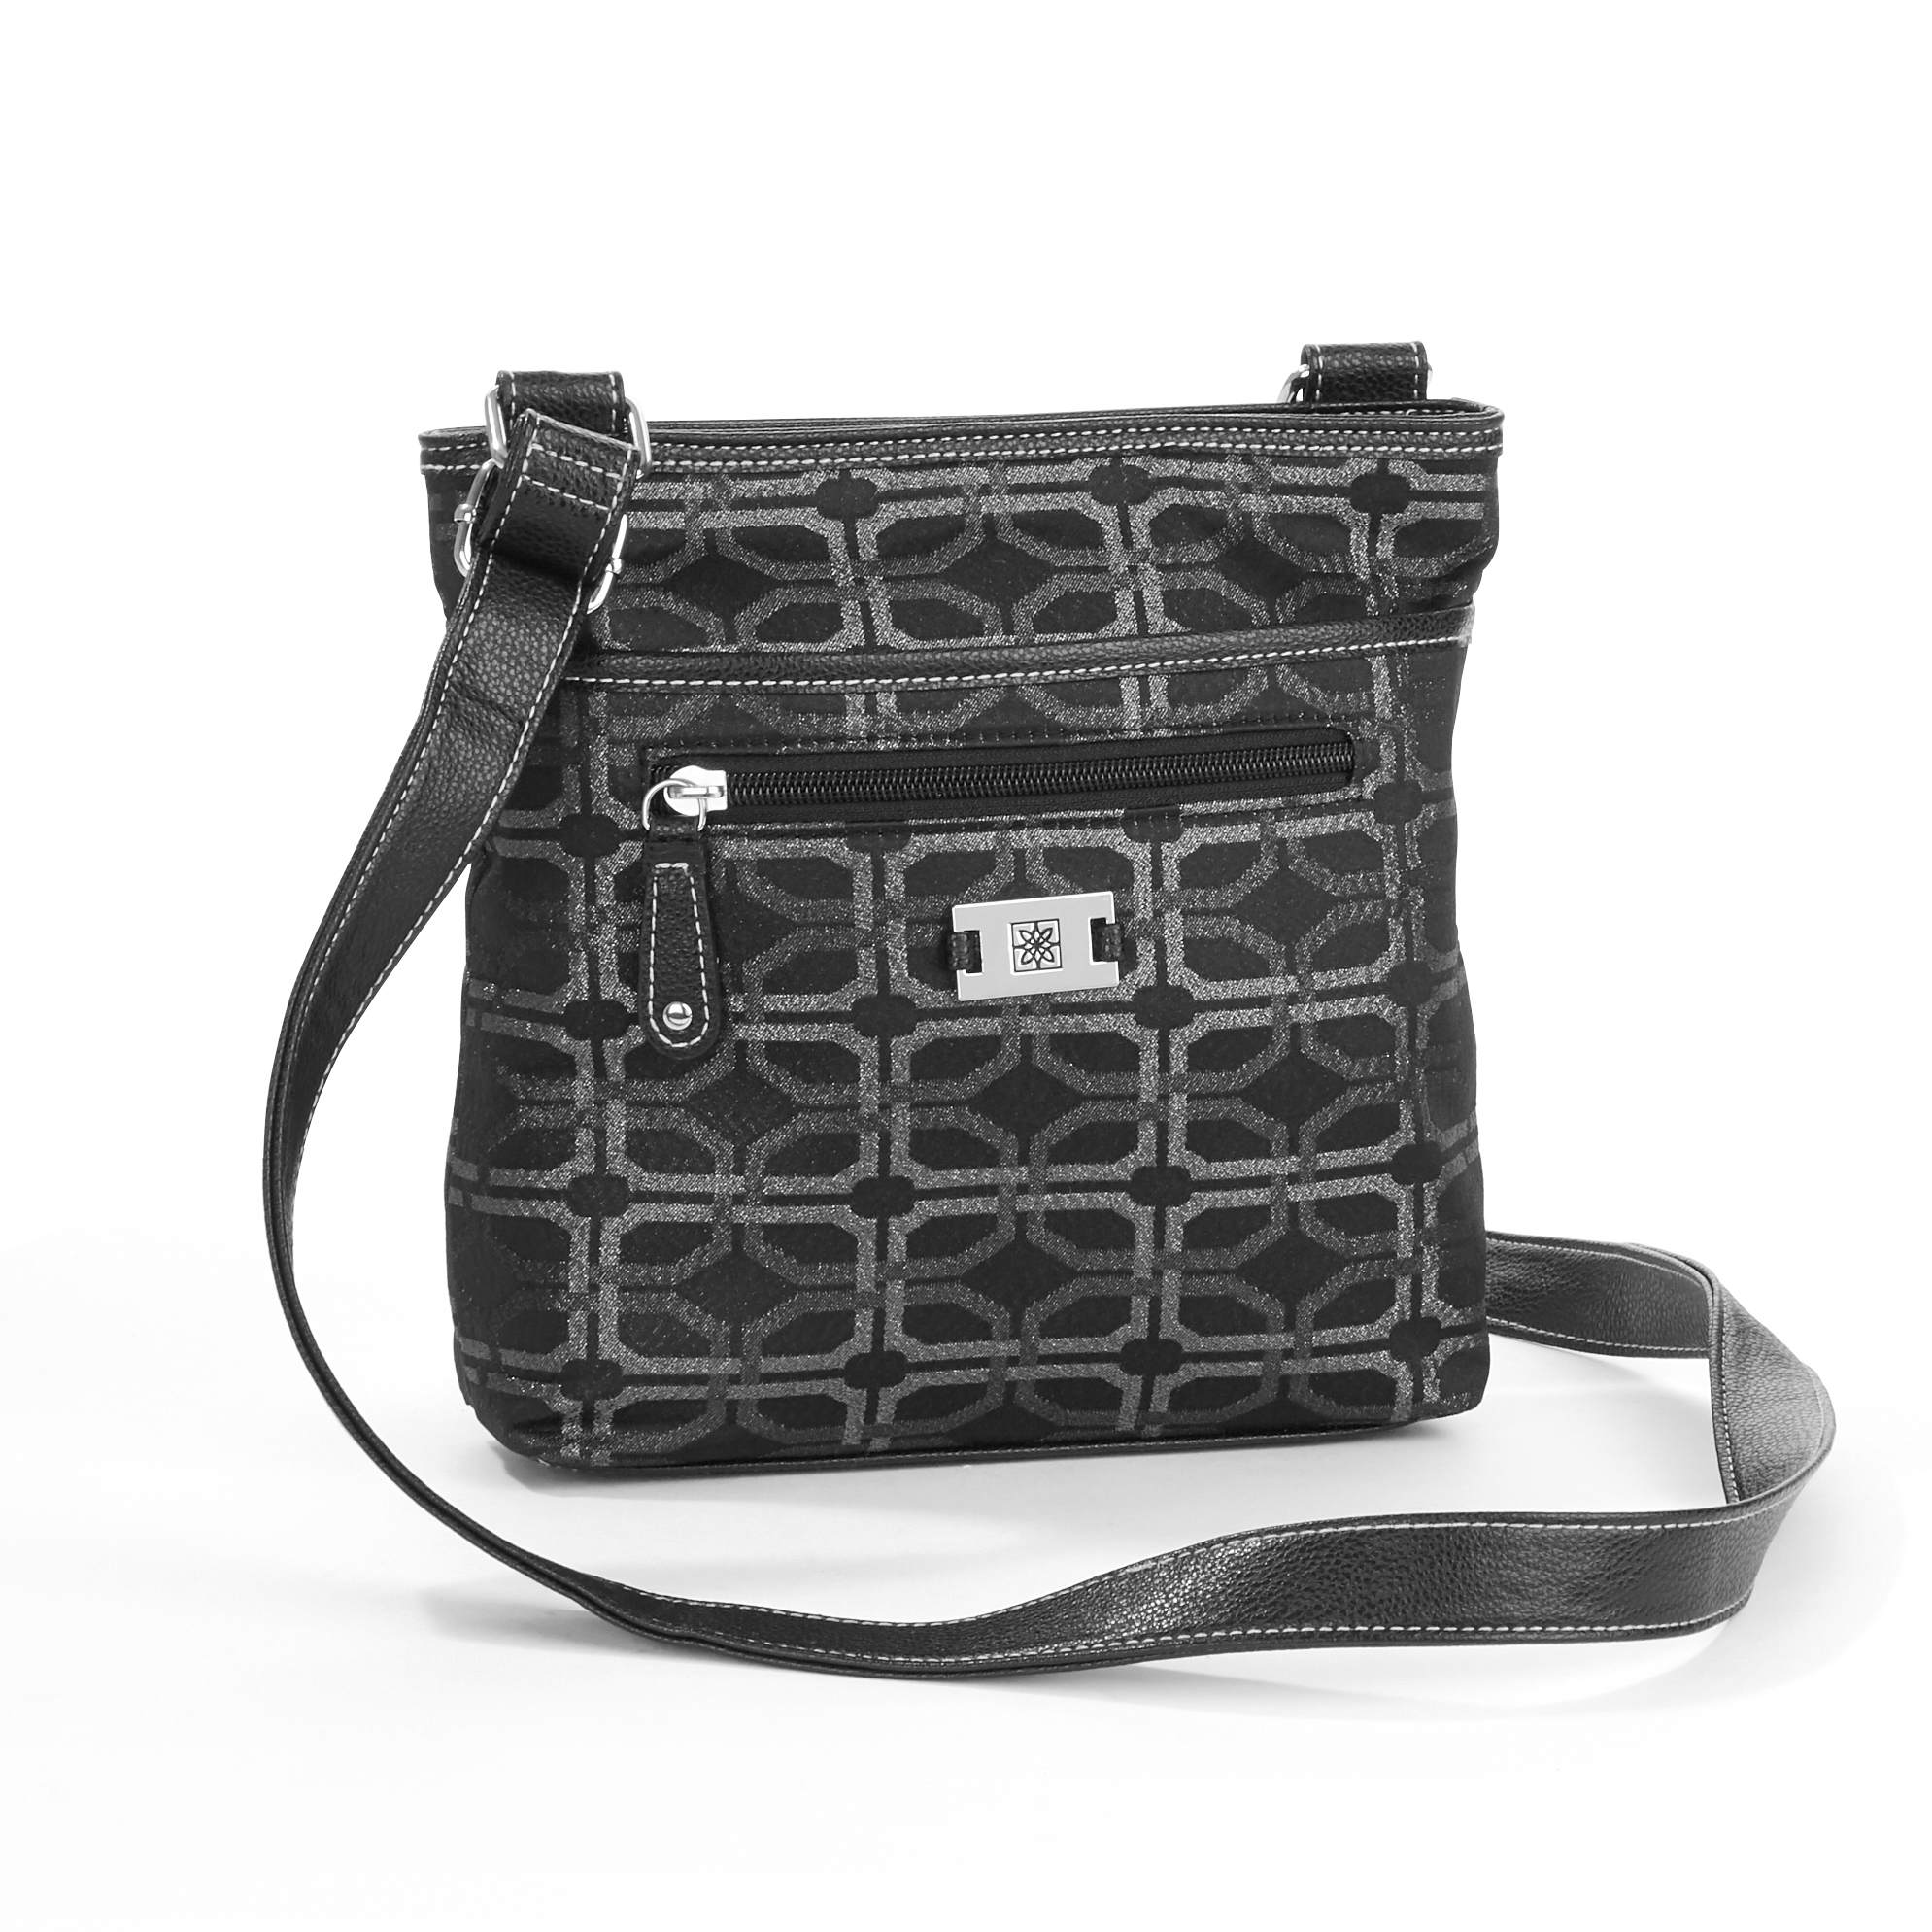 George Jacquard NS Crossbody Handbag